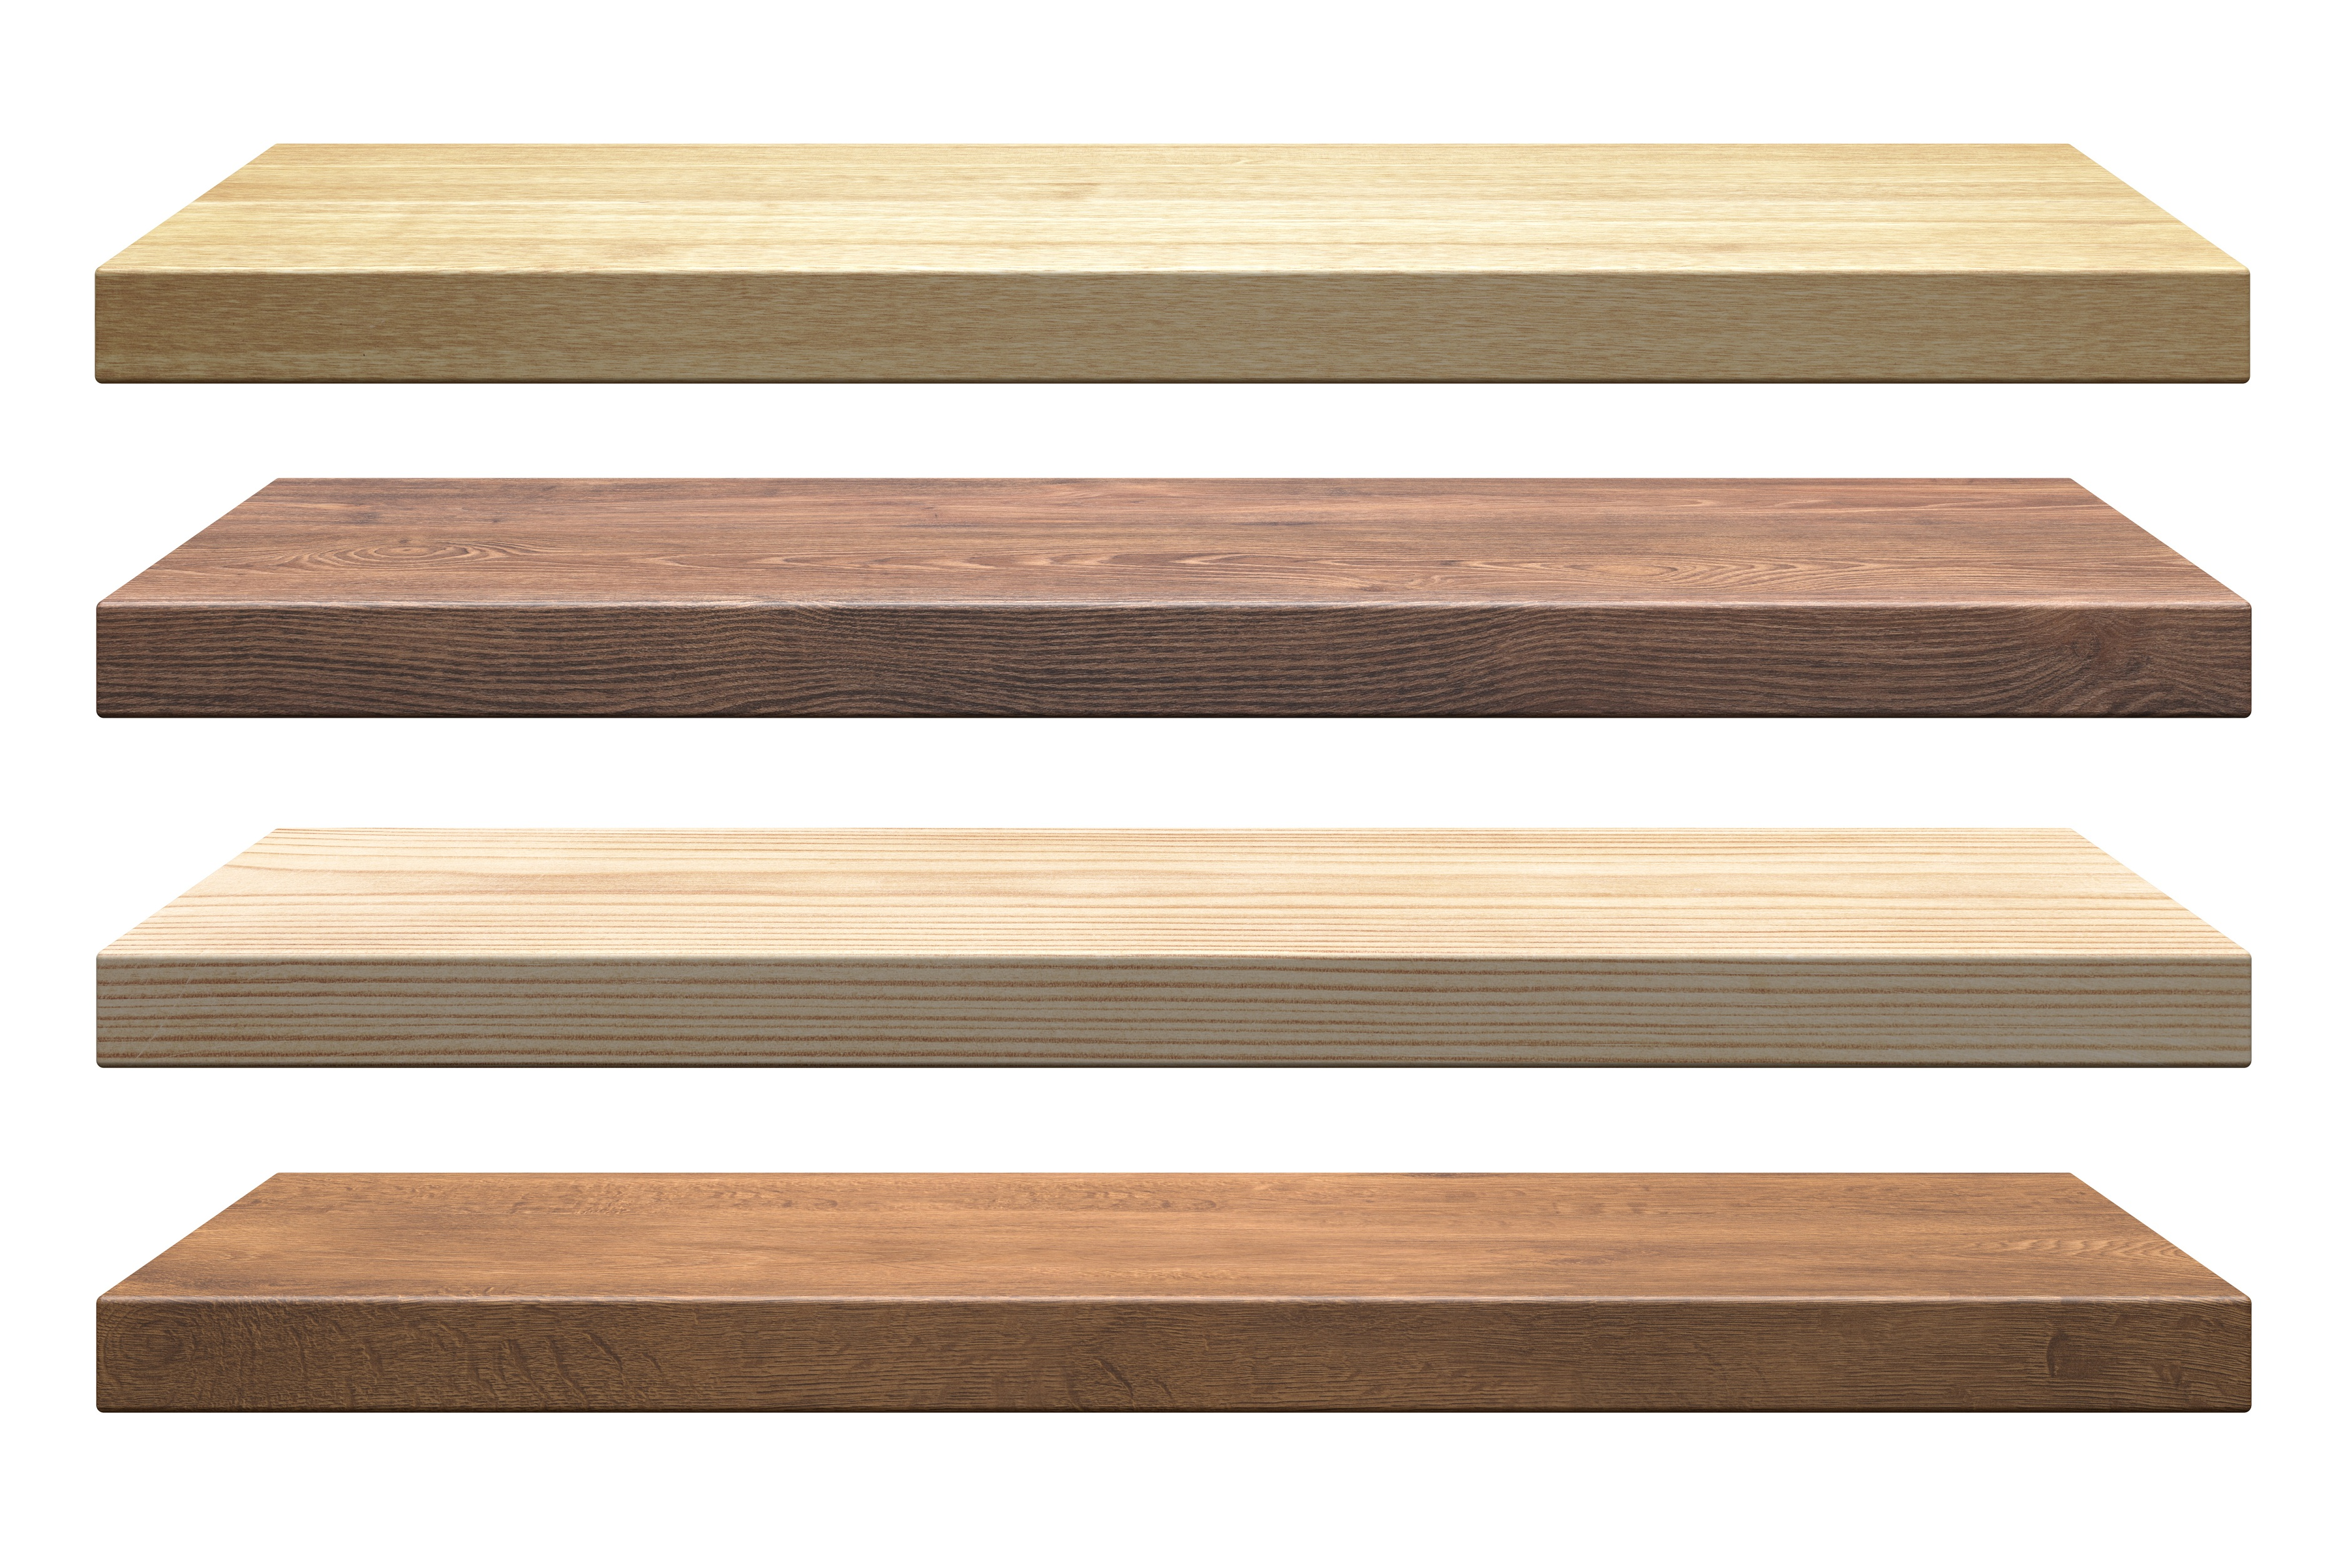 Stair Board Specials By Notion